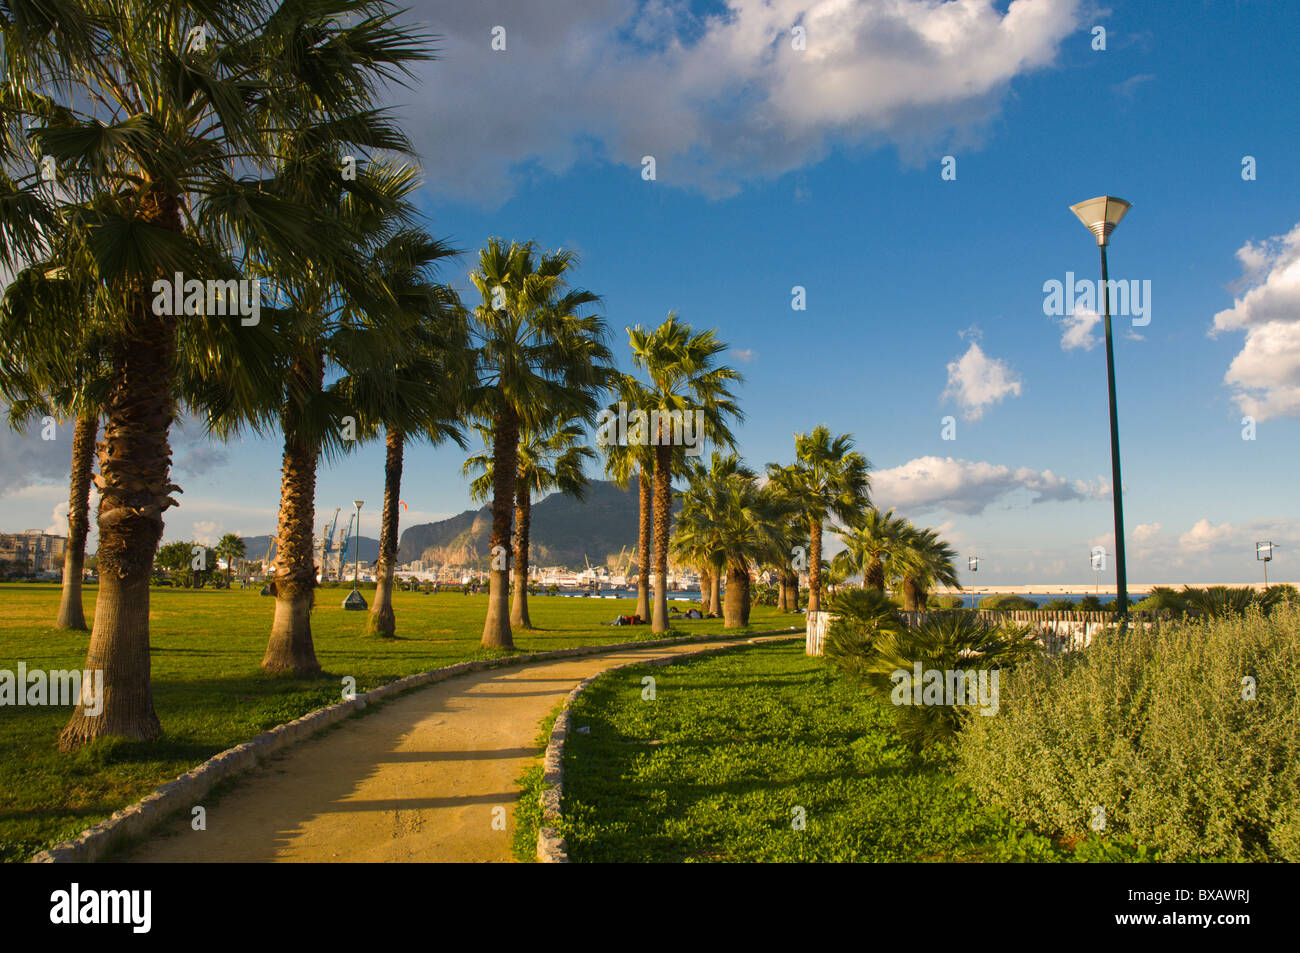 Terrazza a mare park by the sea Palermo Sicily Italy Europe Stock Photo